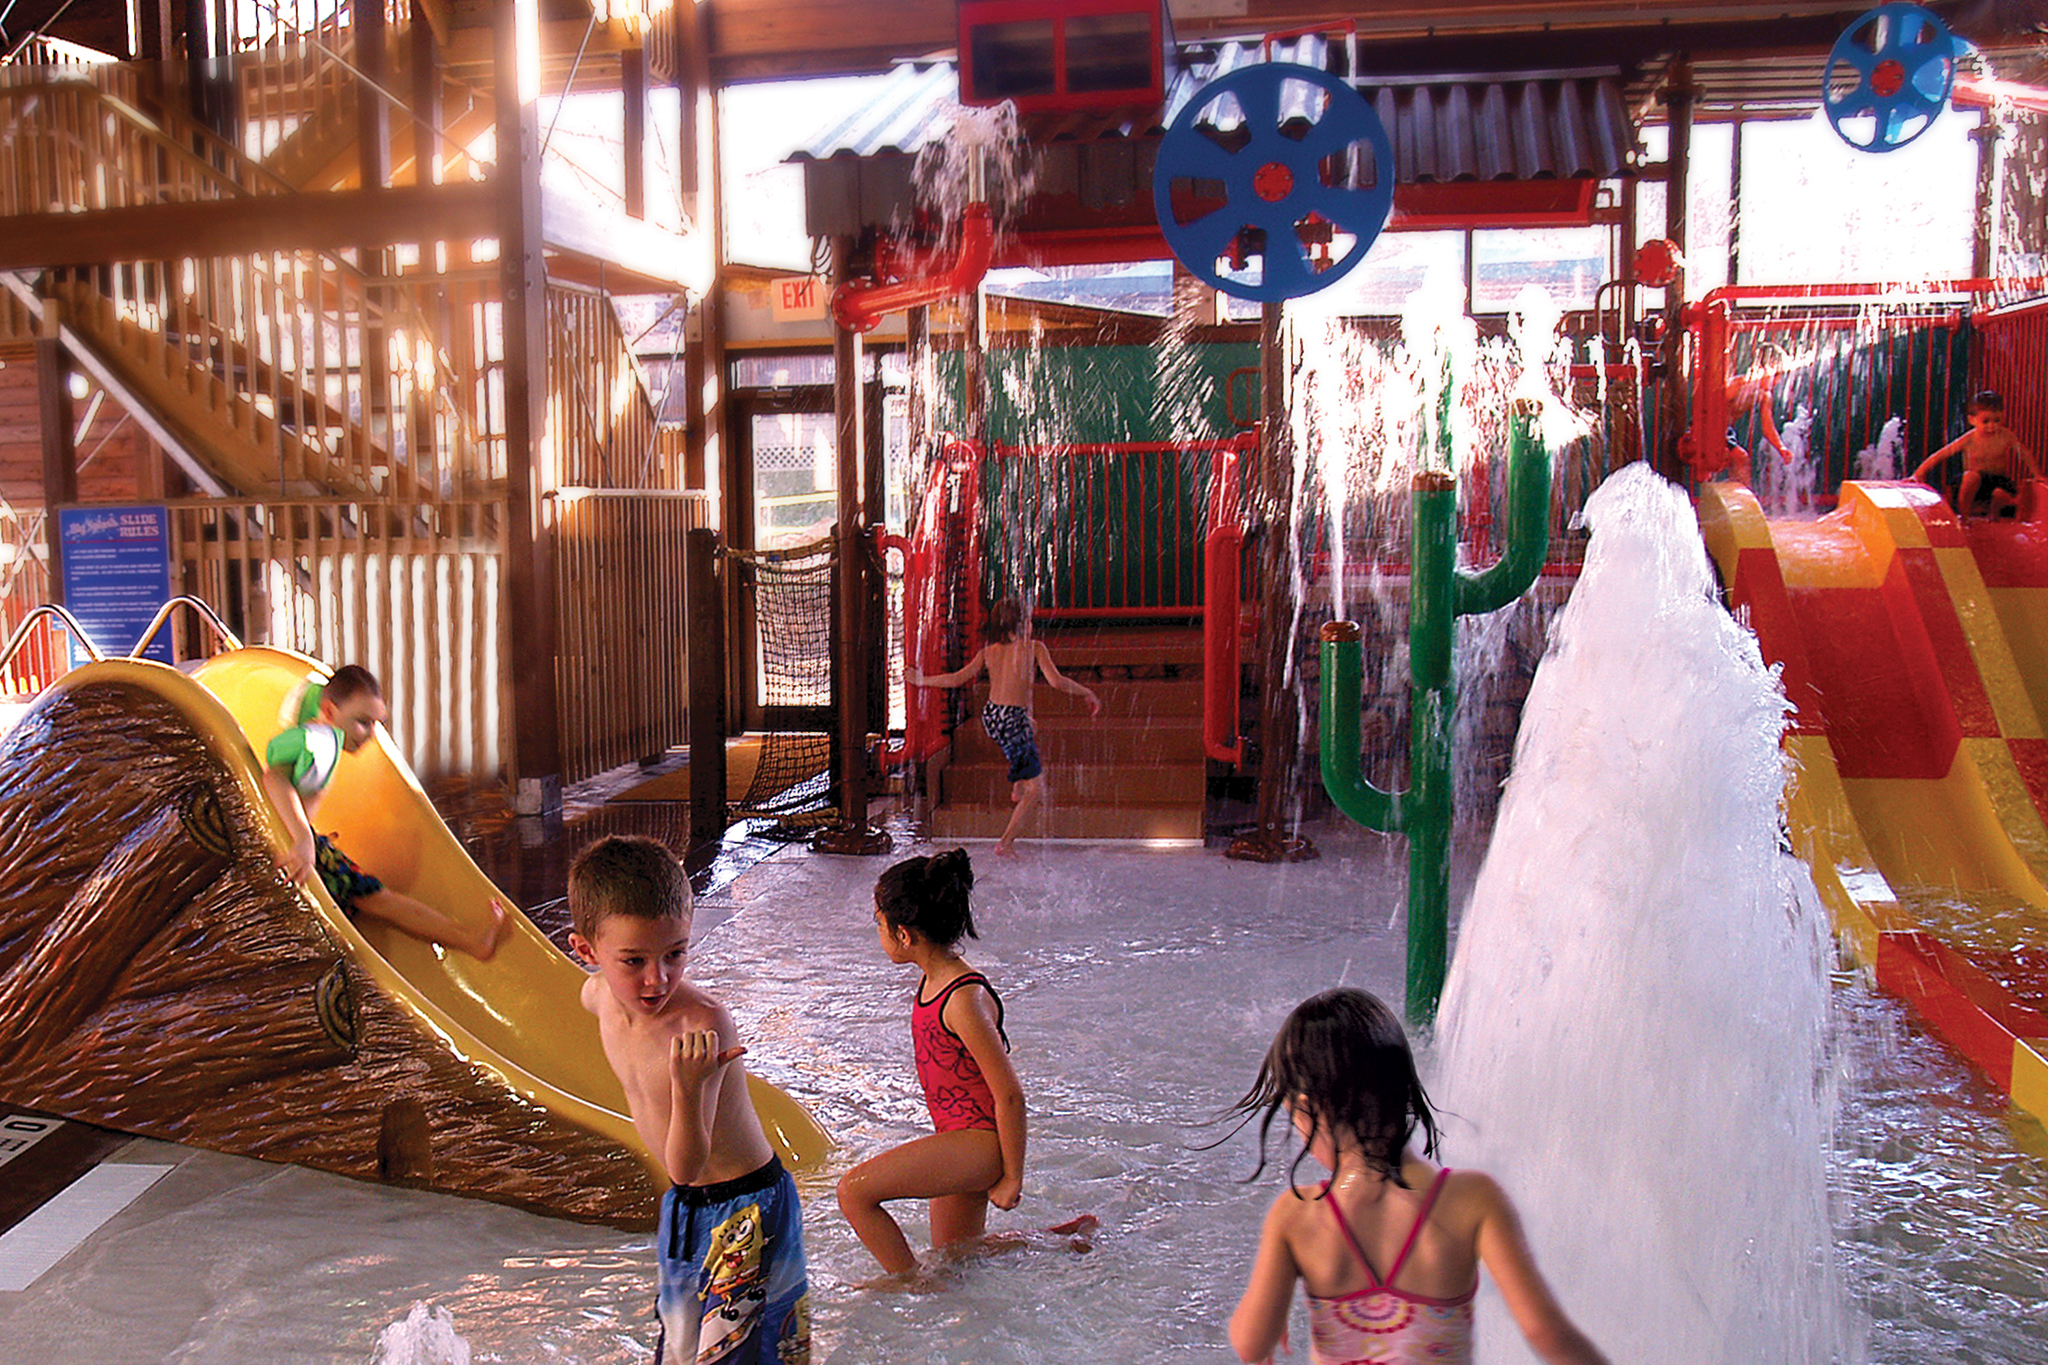 Best indoor water parks near new york city for families for Giant city lodge cabins